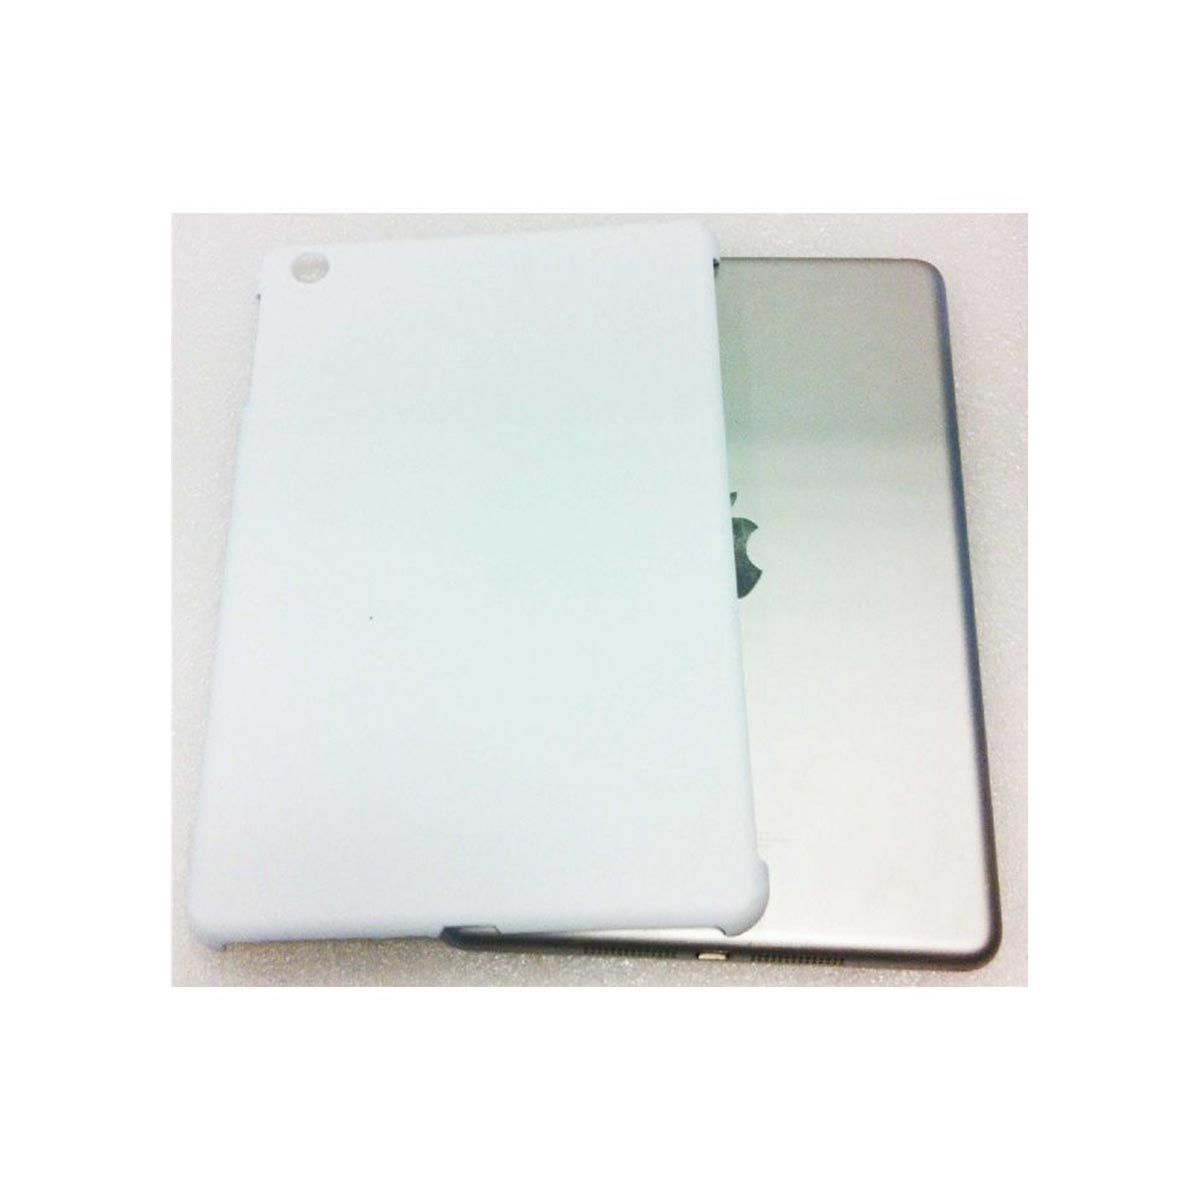 Cover sublimatica per IPAD MINI (10 pz)